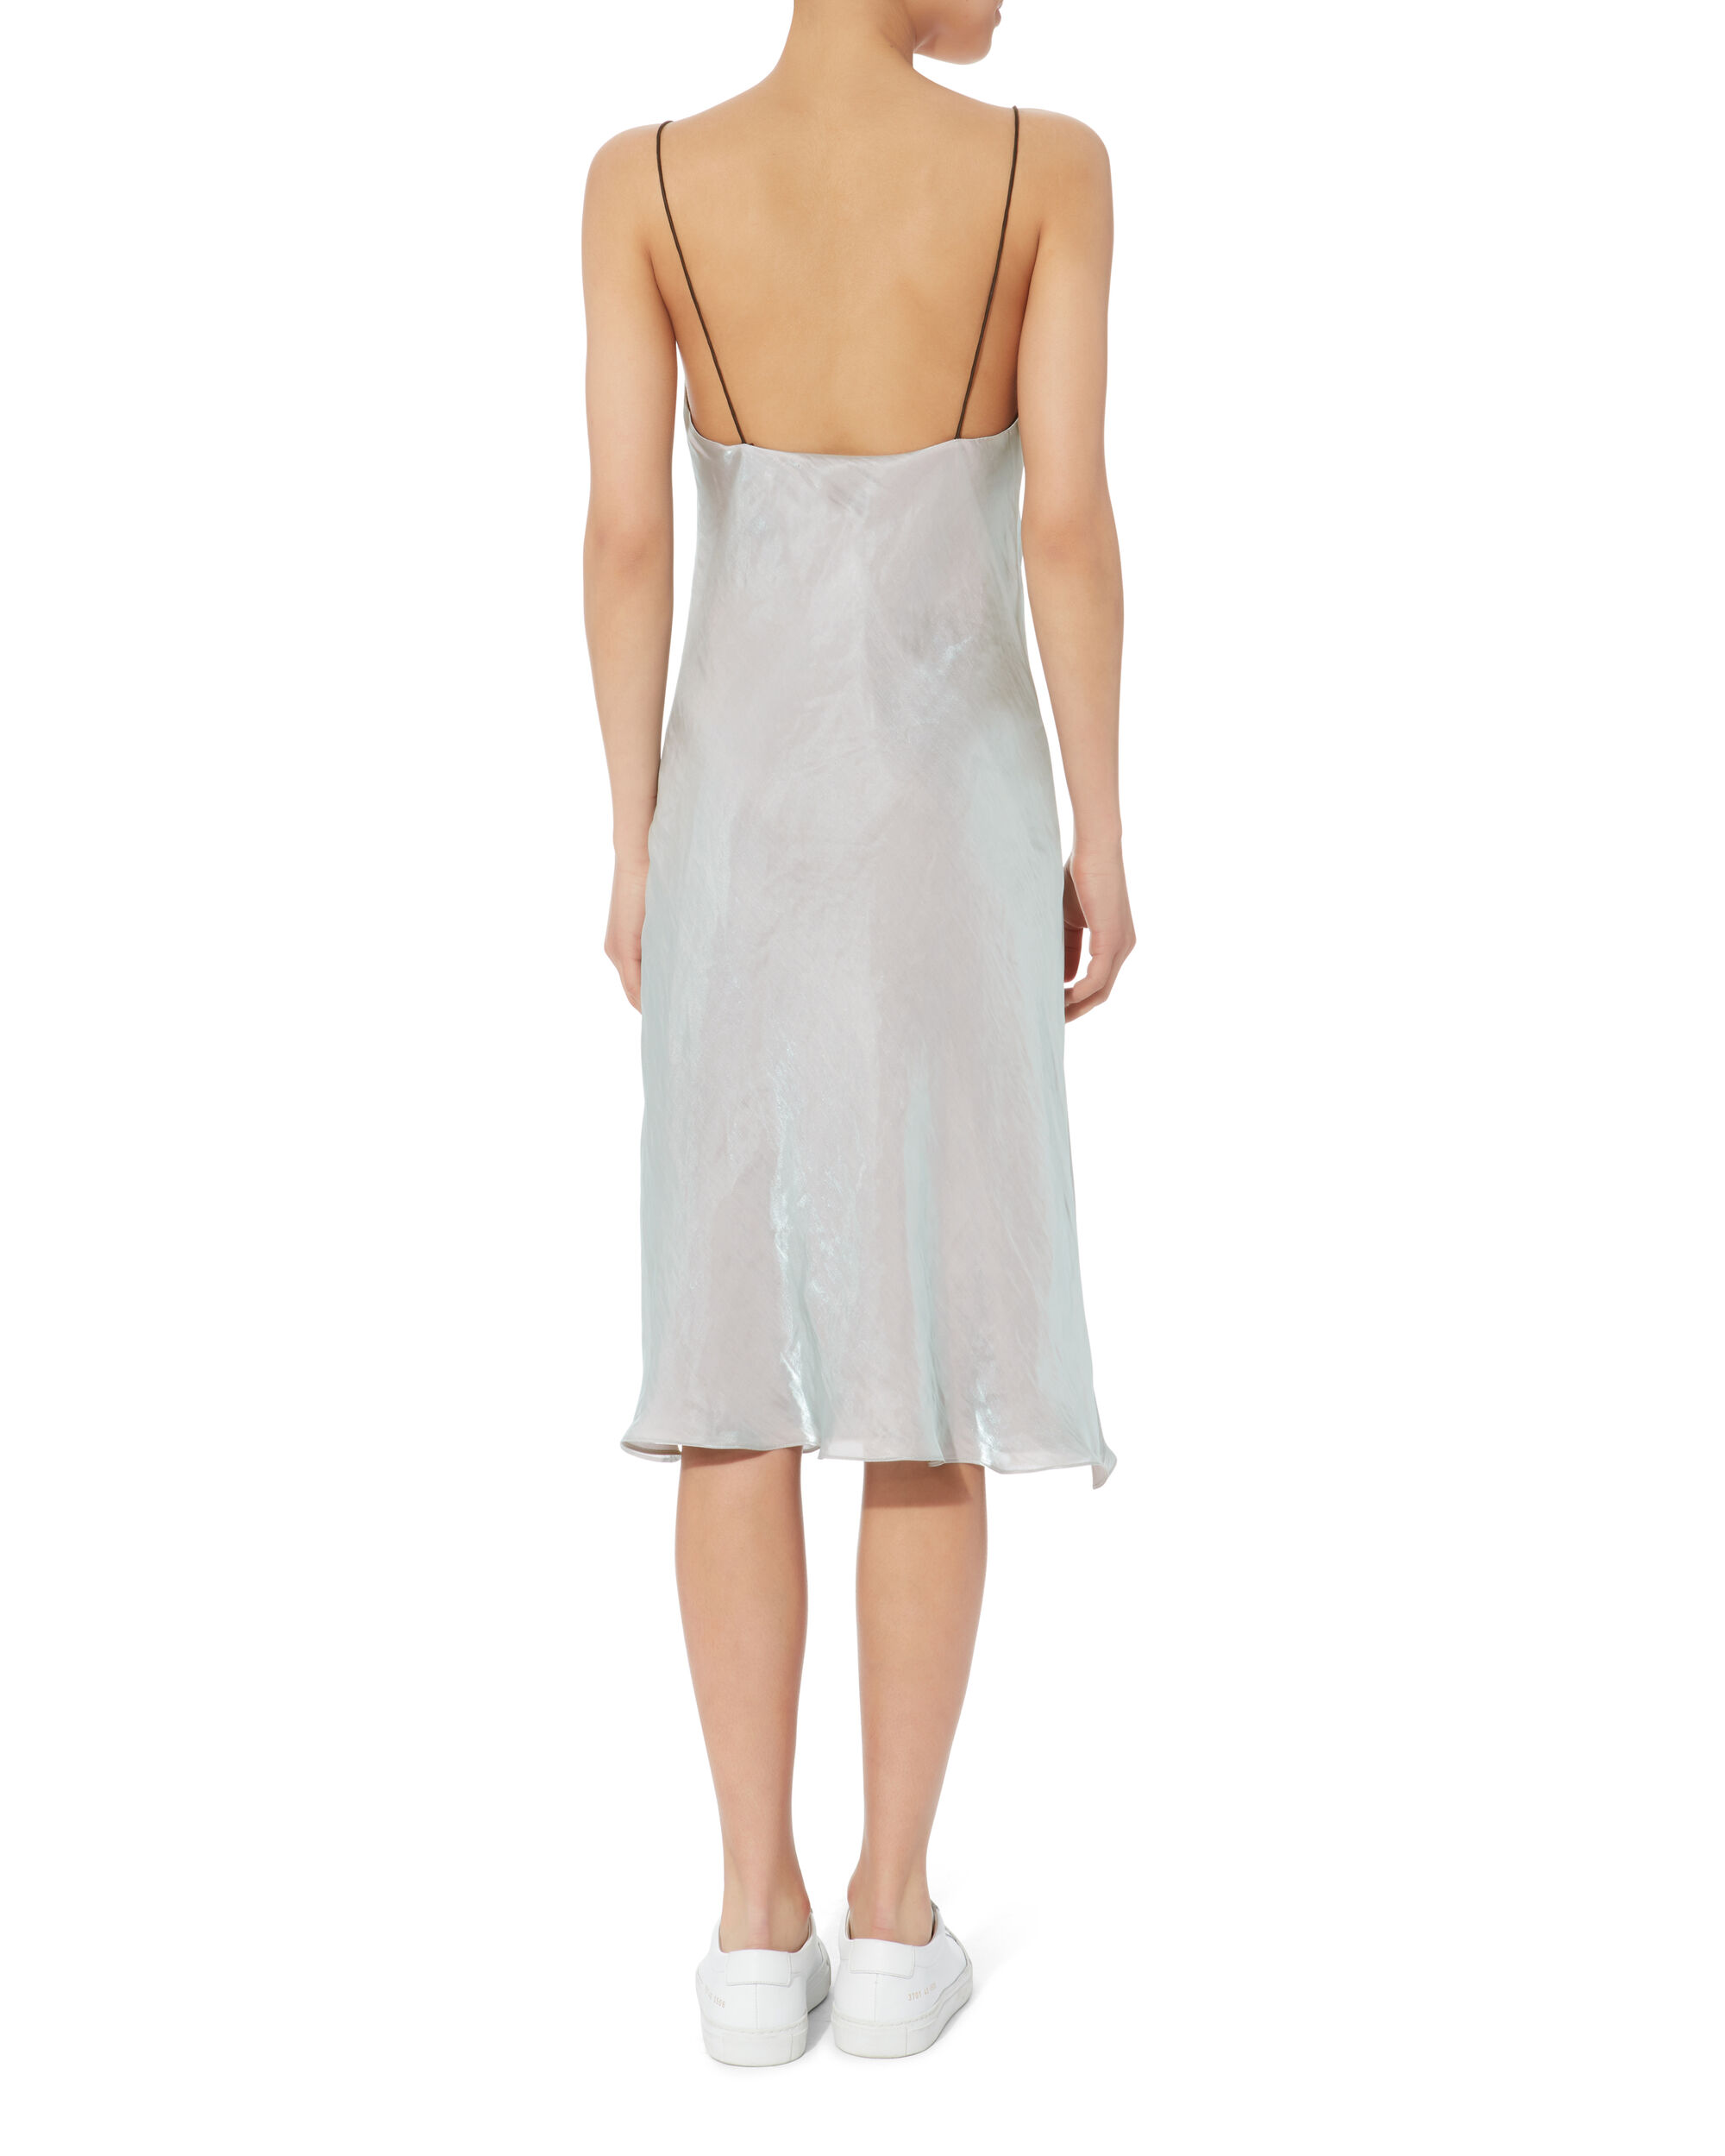 Astrid Irridescent Slip Dress, BLUE-LT, hi-res